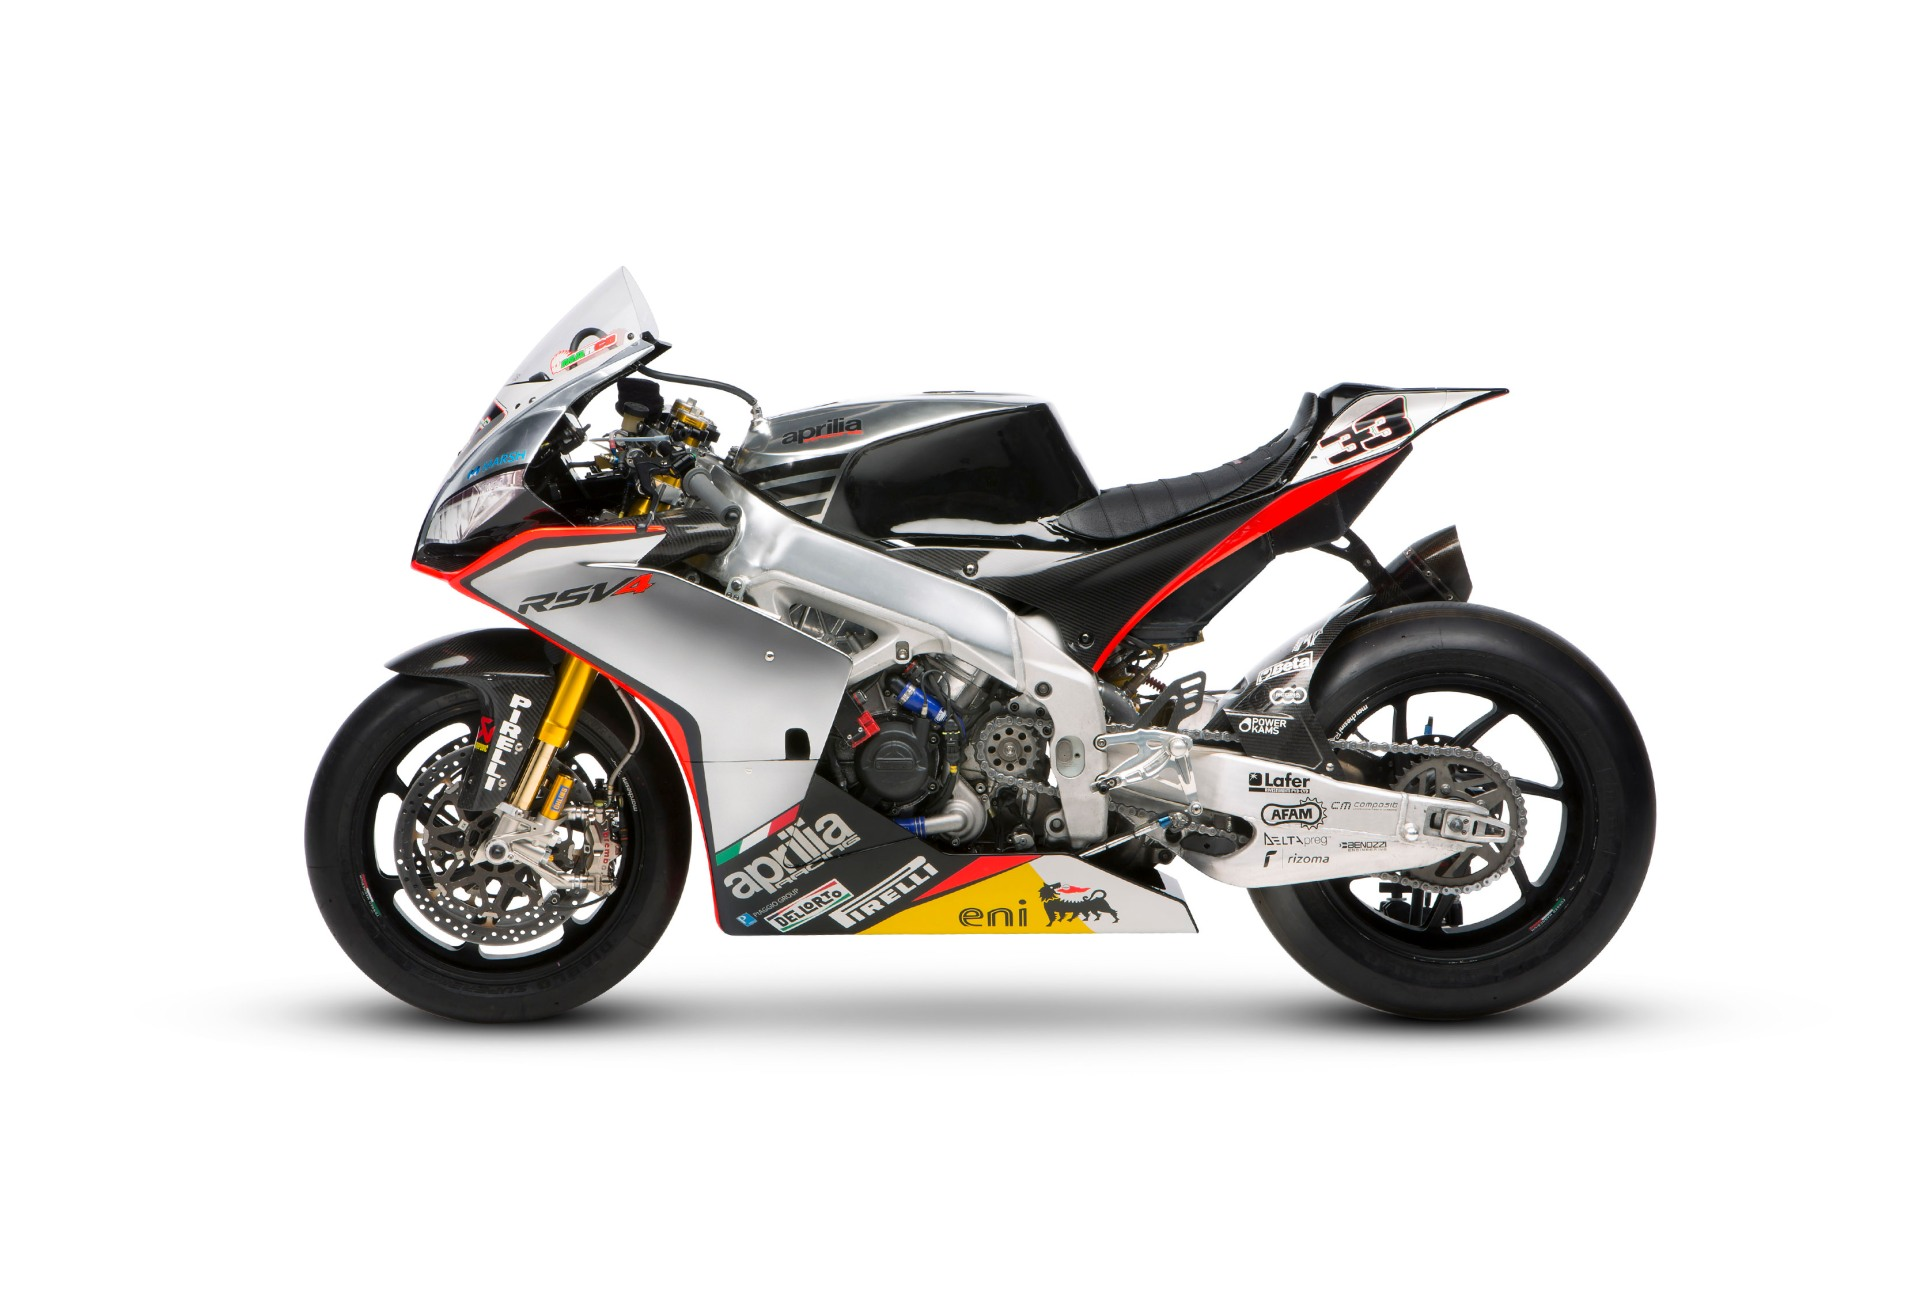 Aprilia RSV4 - 2014 World Superbike Championship Assault